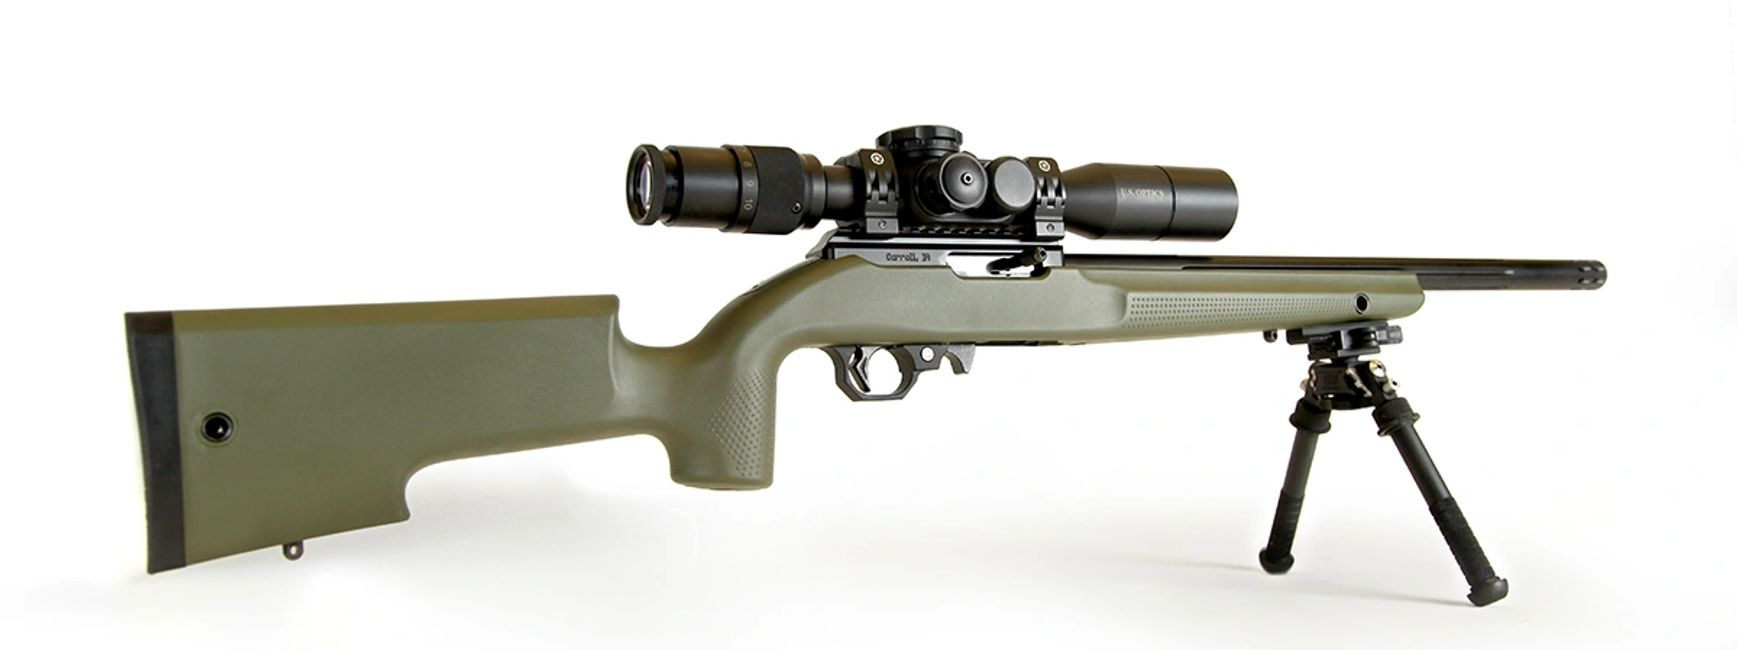 Volquartsen Rifle with Titan 1022 Stock in OD Green.